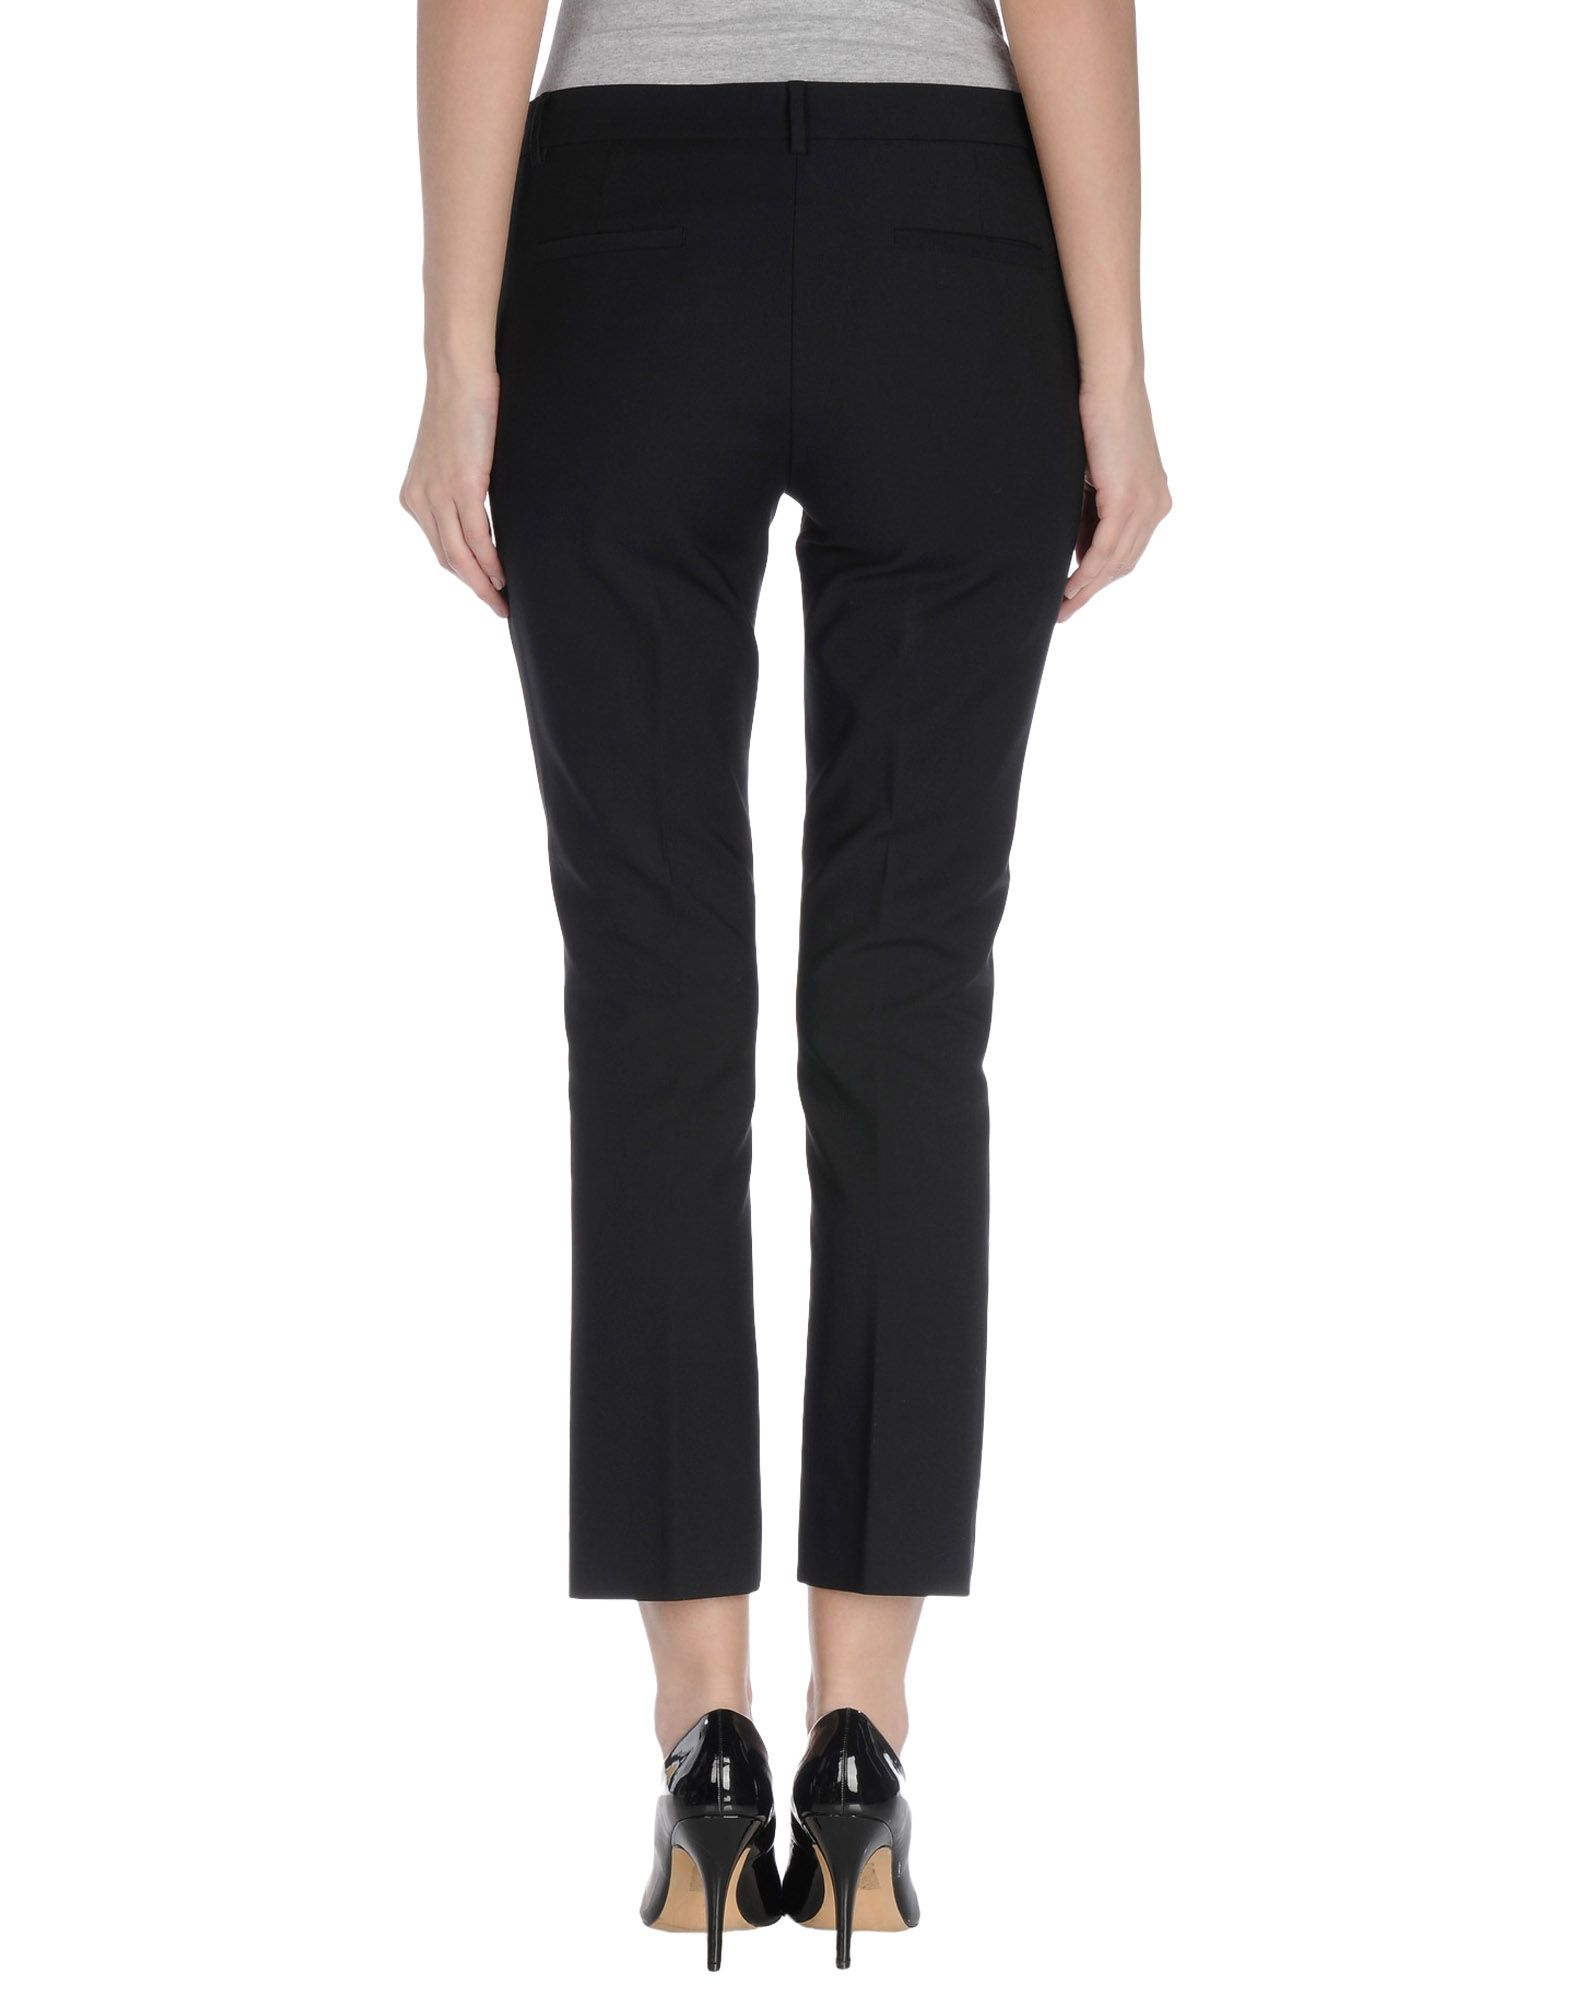 Cheap Ebay Outlet Store TROUSERS - Casual trousers Borgonovo Cheap Wholesale Price 6g0d7WgSn